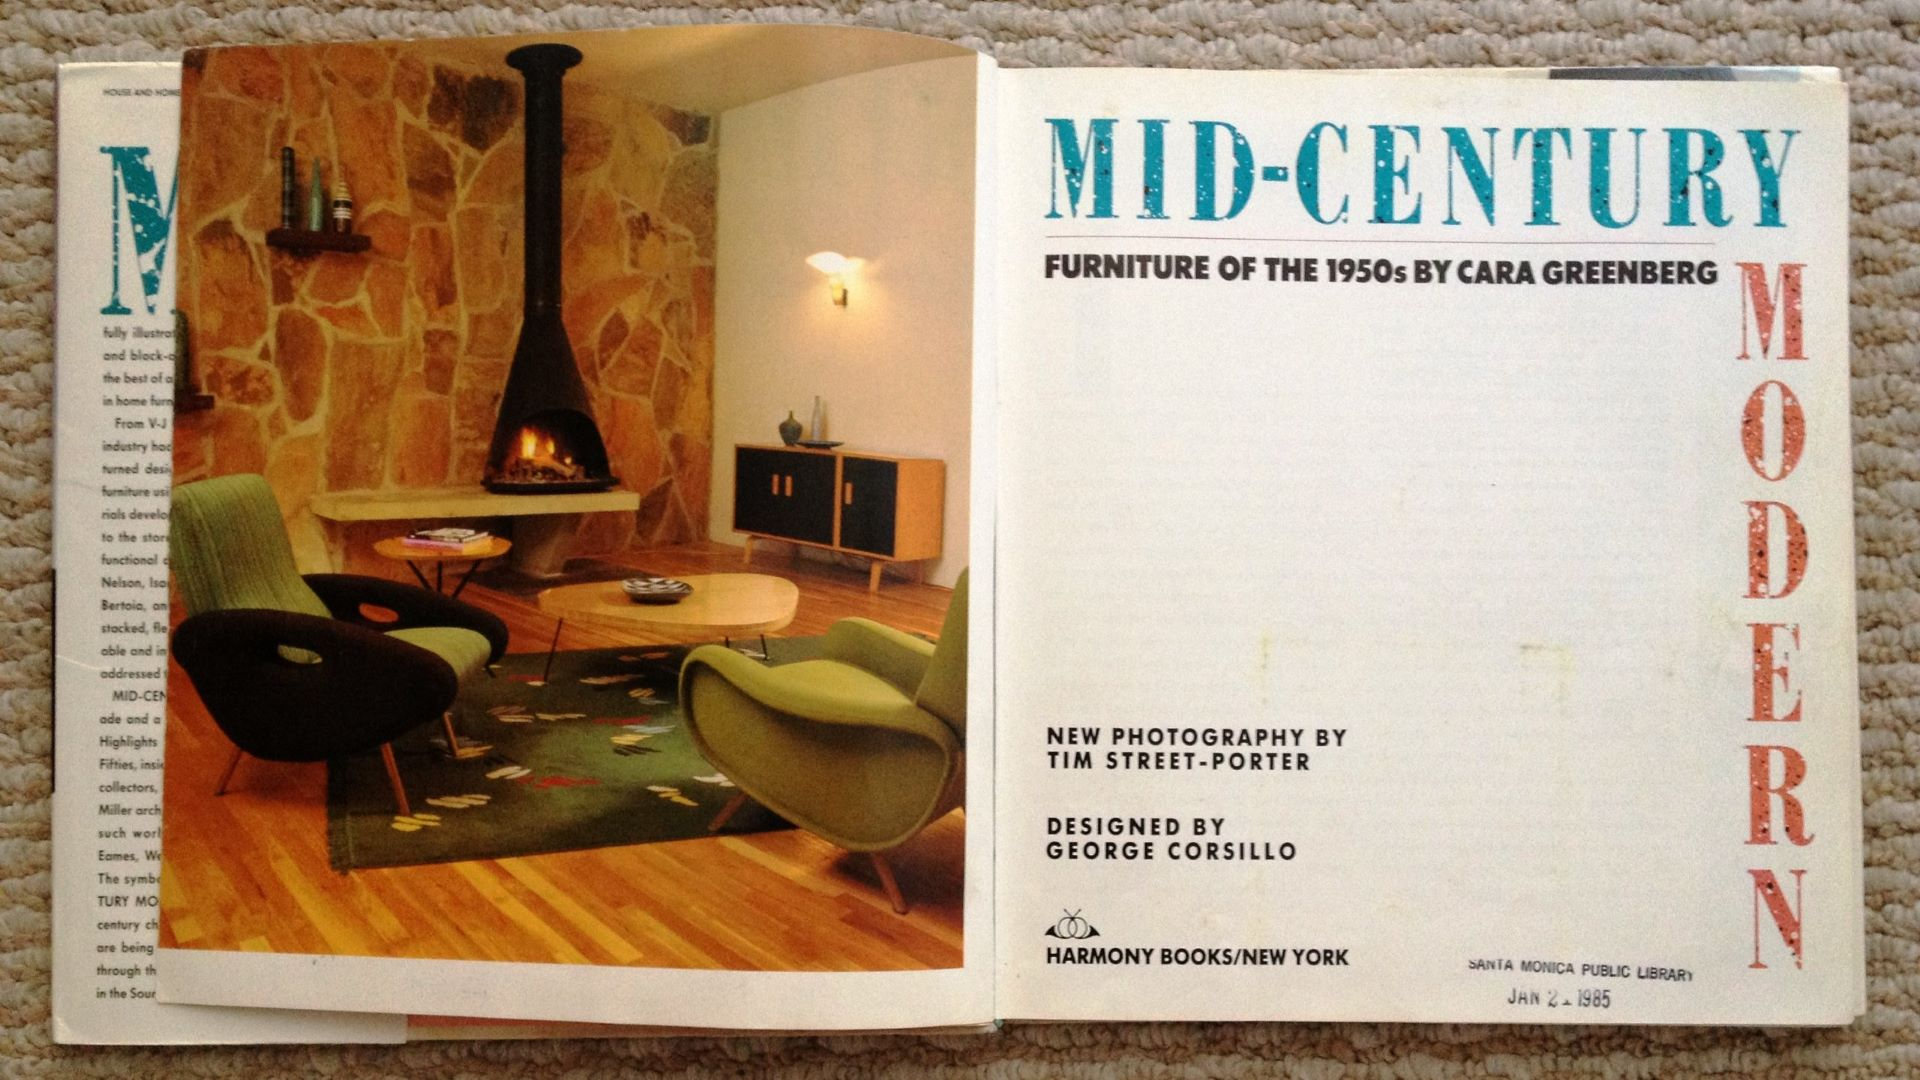 Image of the first book to use the term Mid-Century Modern